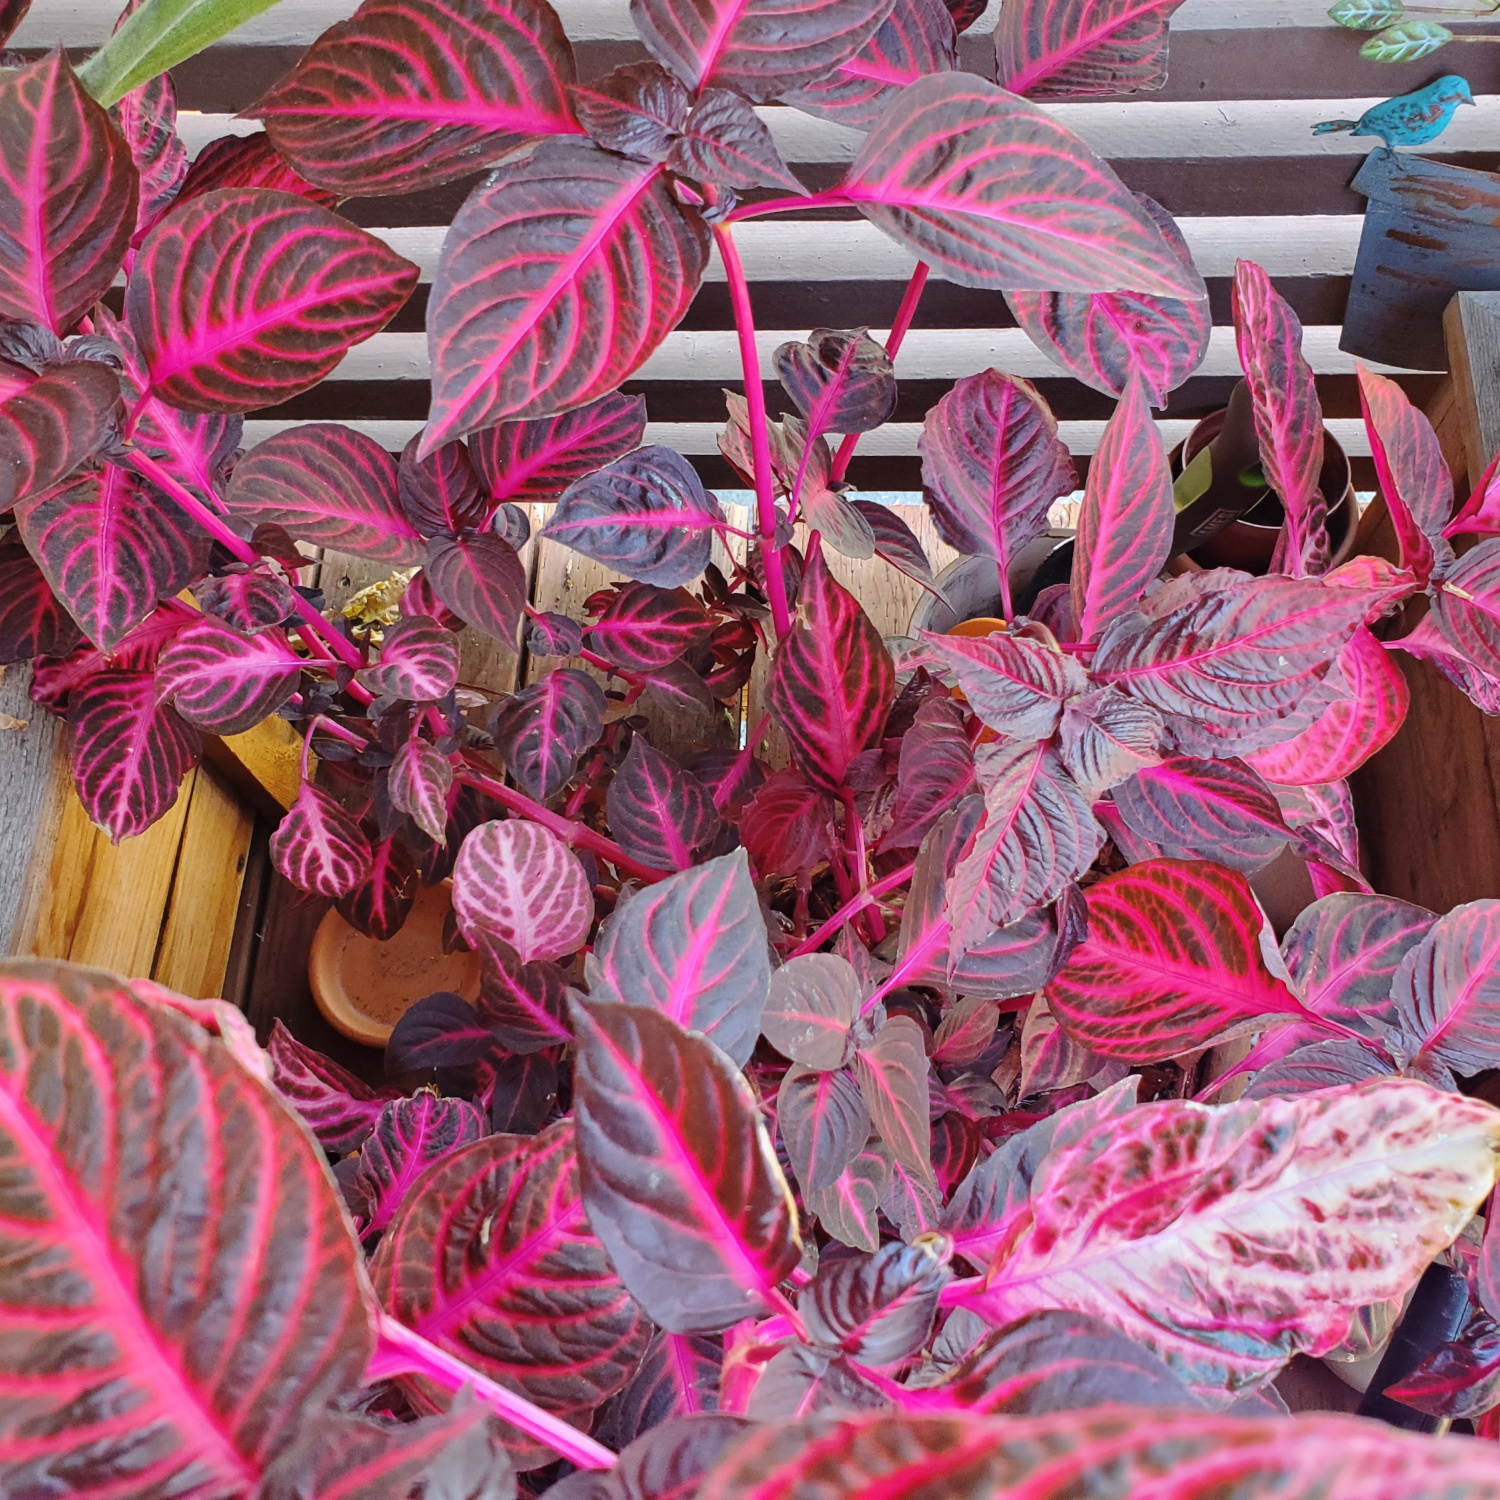 The bloodleaf has really spread out in shadowed low light